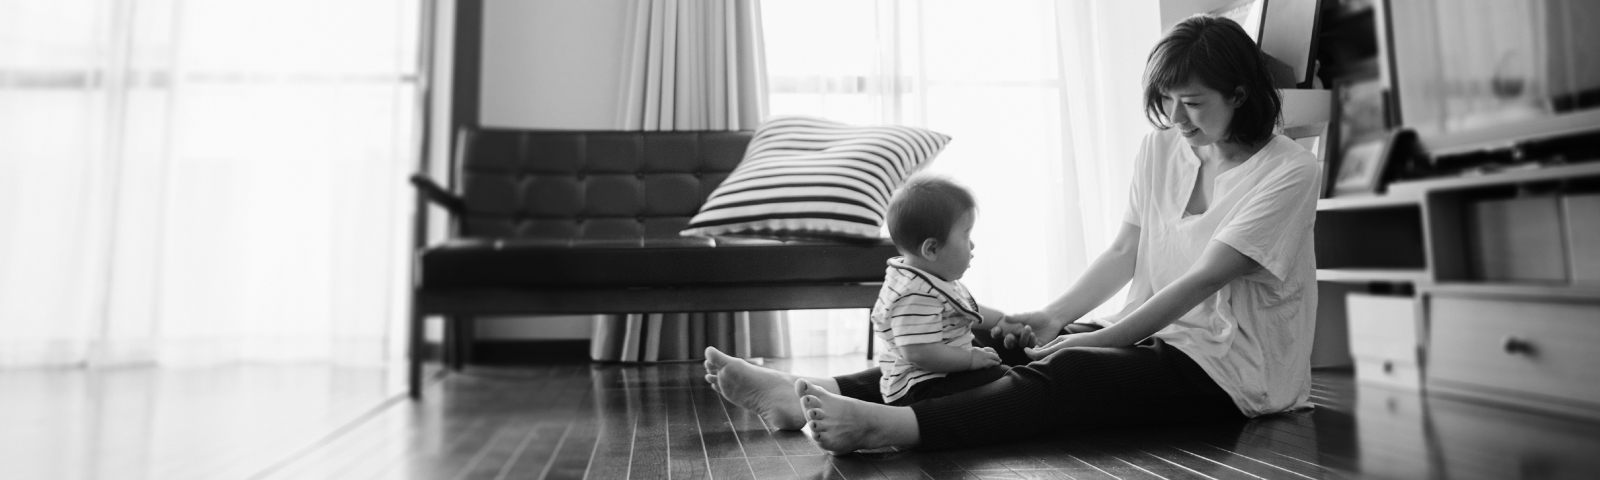 A mother sits on the wooden floor of her home with her young child.